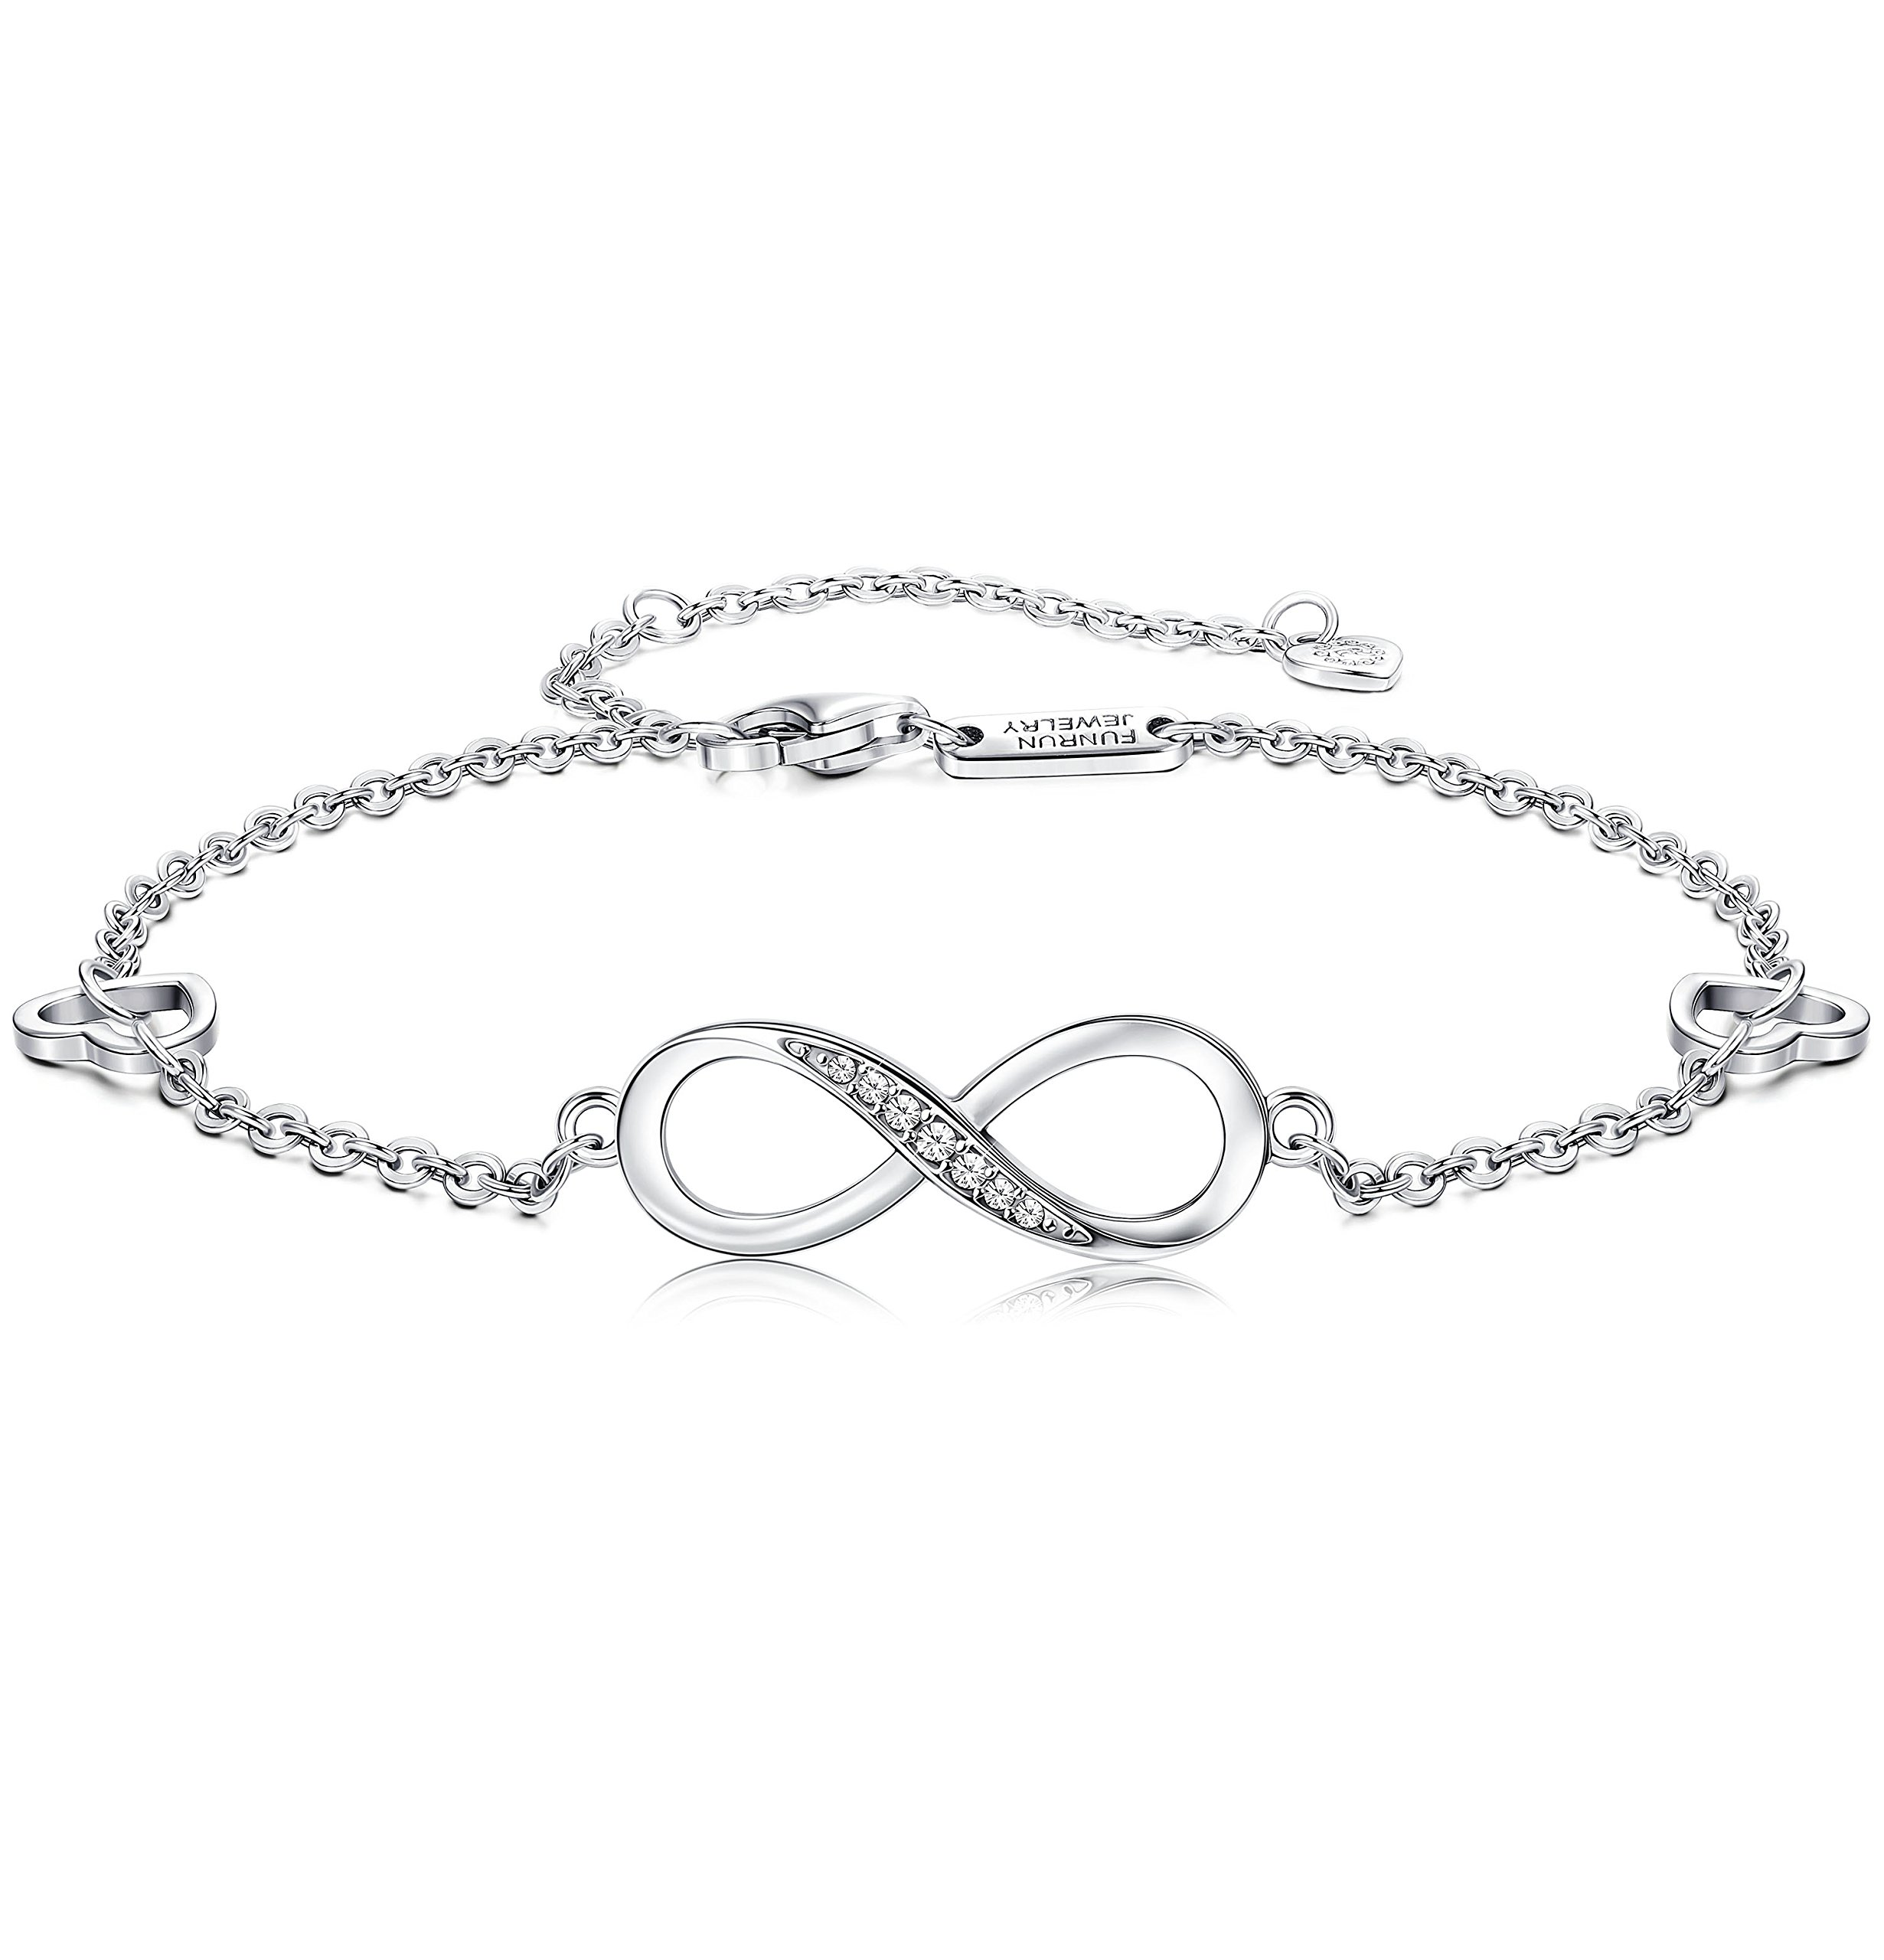 FUNRUN JEWELRY 925 Sterling Silver Infinity Bracelets and Anklet Bracelets for Women Girls 4-Level Adjustable Length Gift for Mother's Day (Anklet)